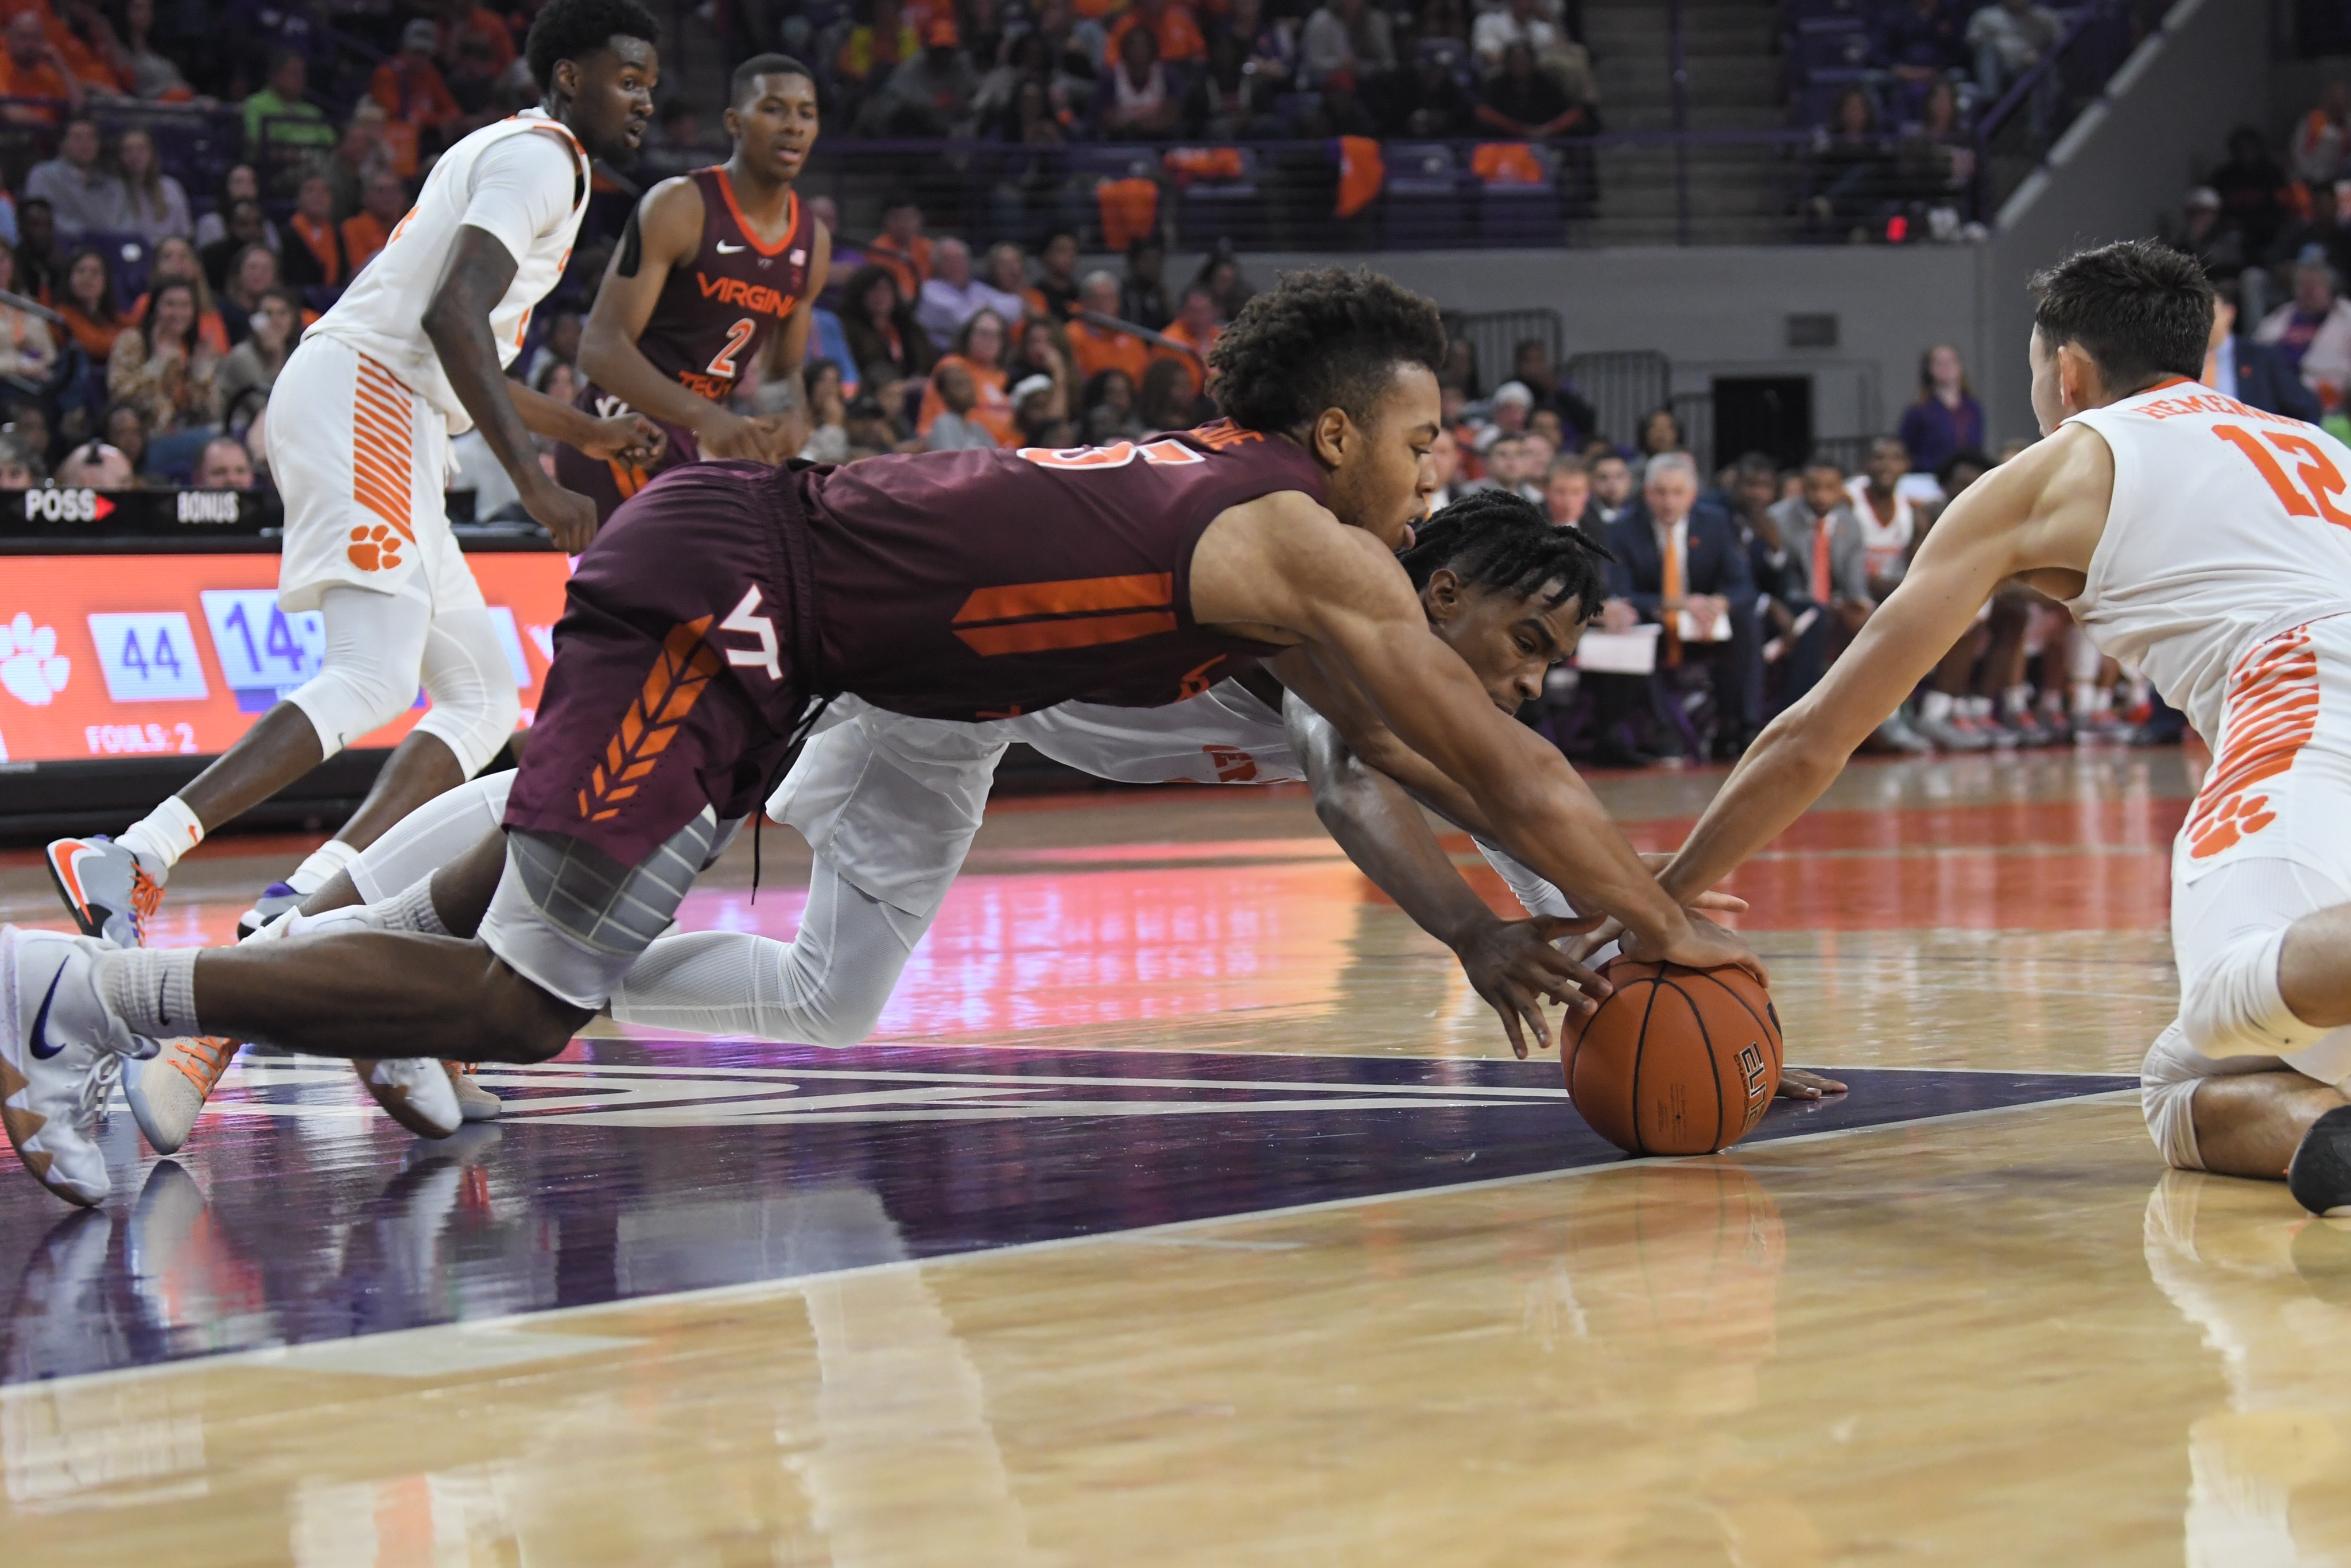 Three Things to Watch for Virginia Tech Against USC Upstate